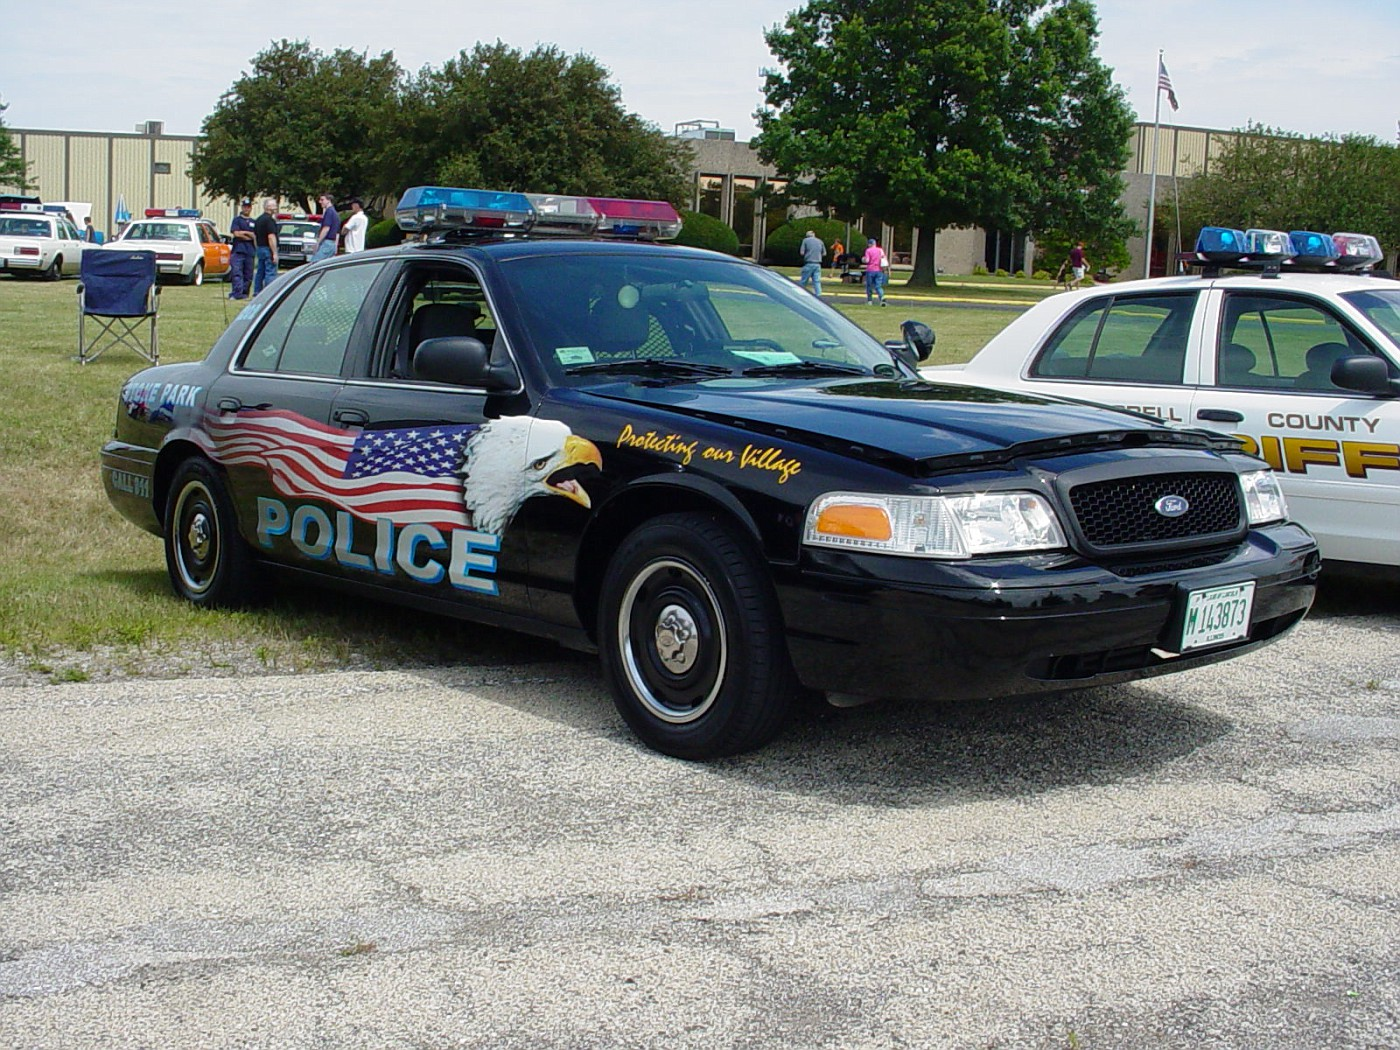 Stone Park Police >> Copcar Dot Com The Home Of The American Police Car Photo